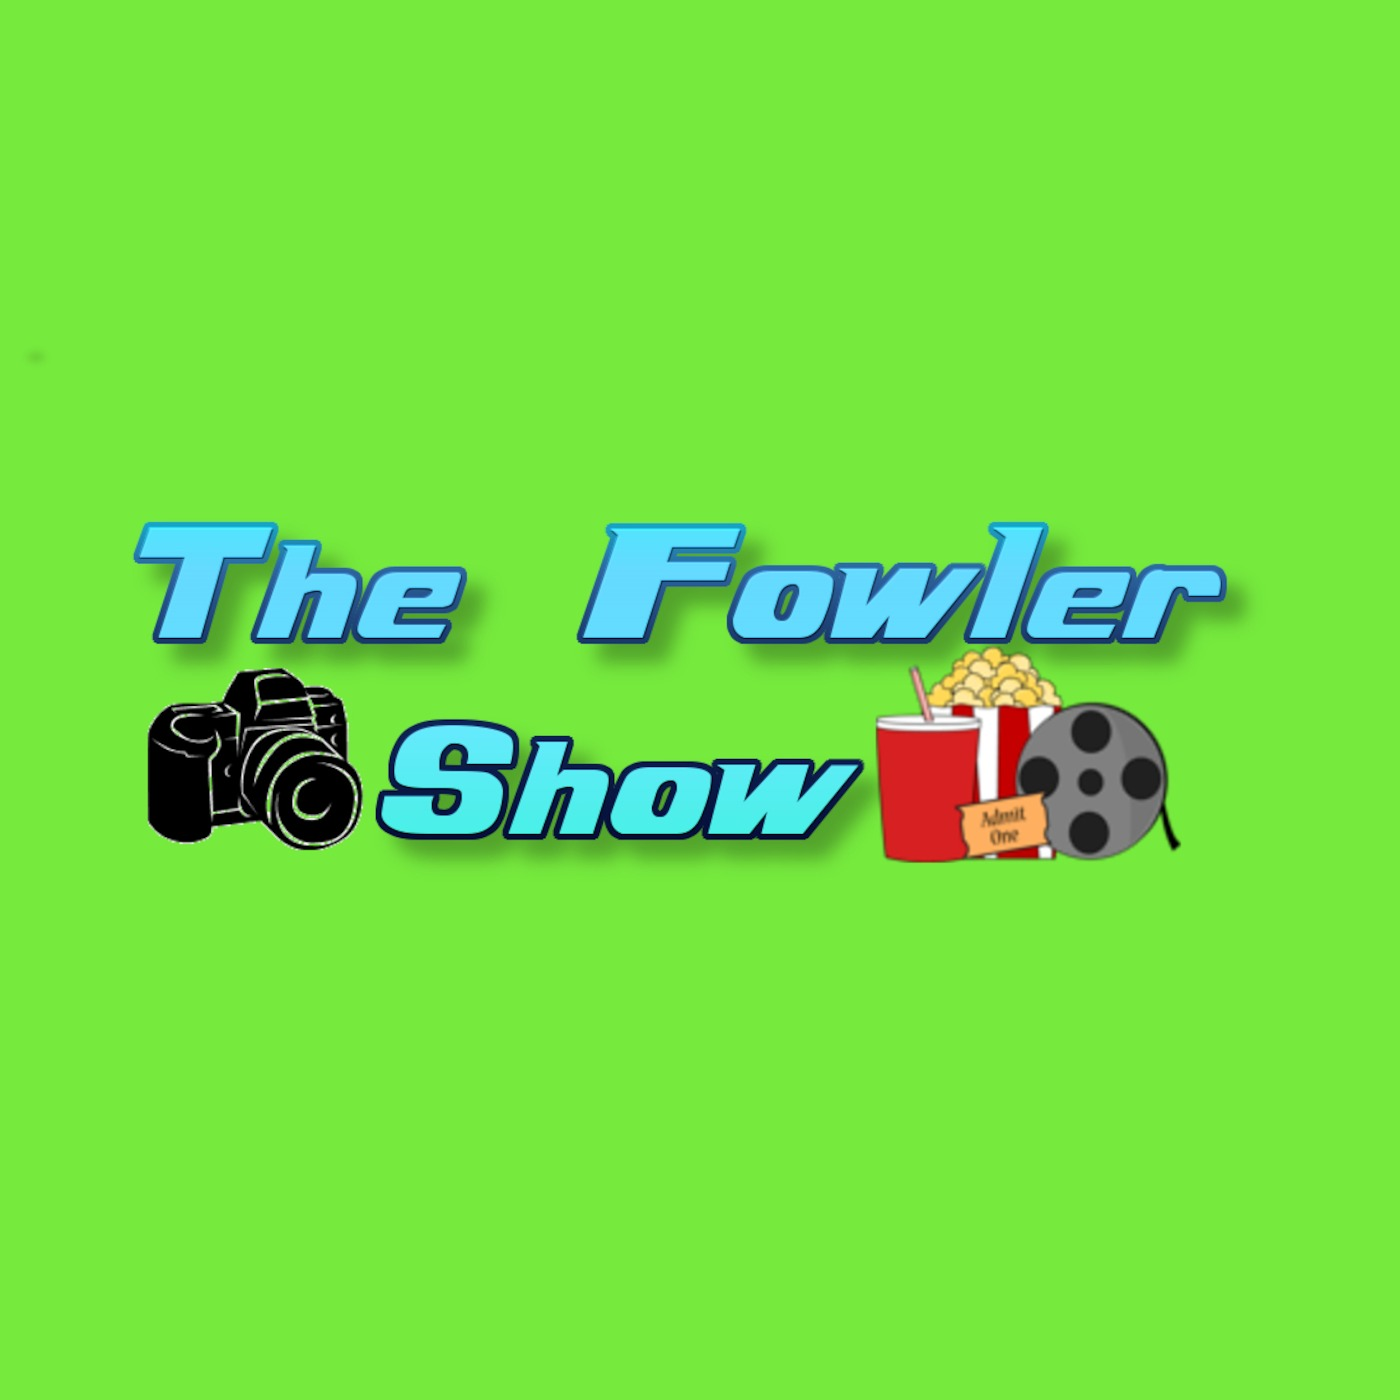 Gabe Fowler's Podcast